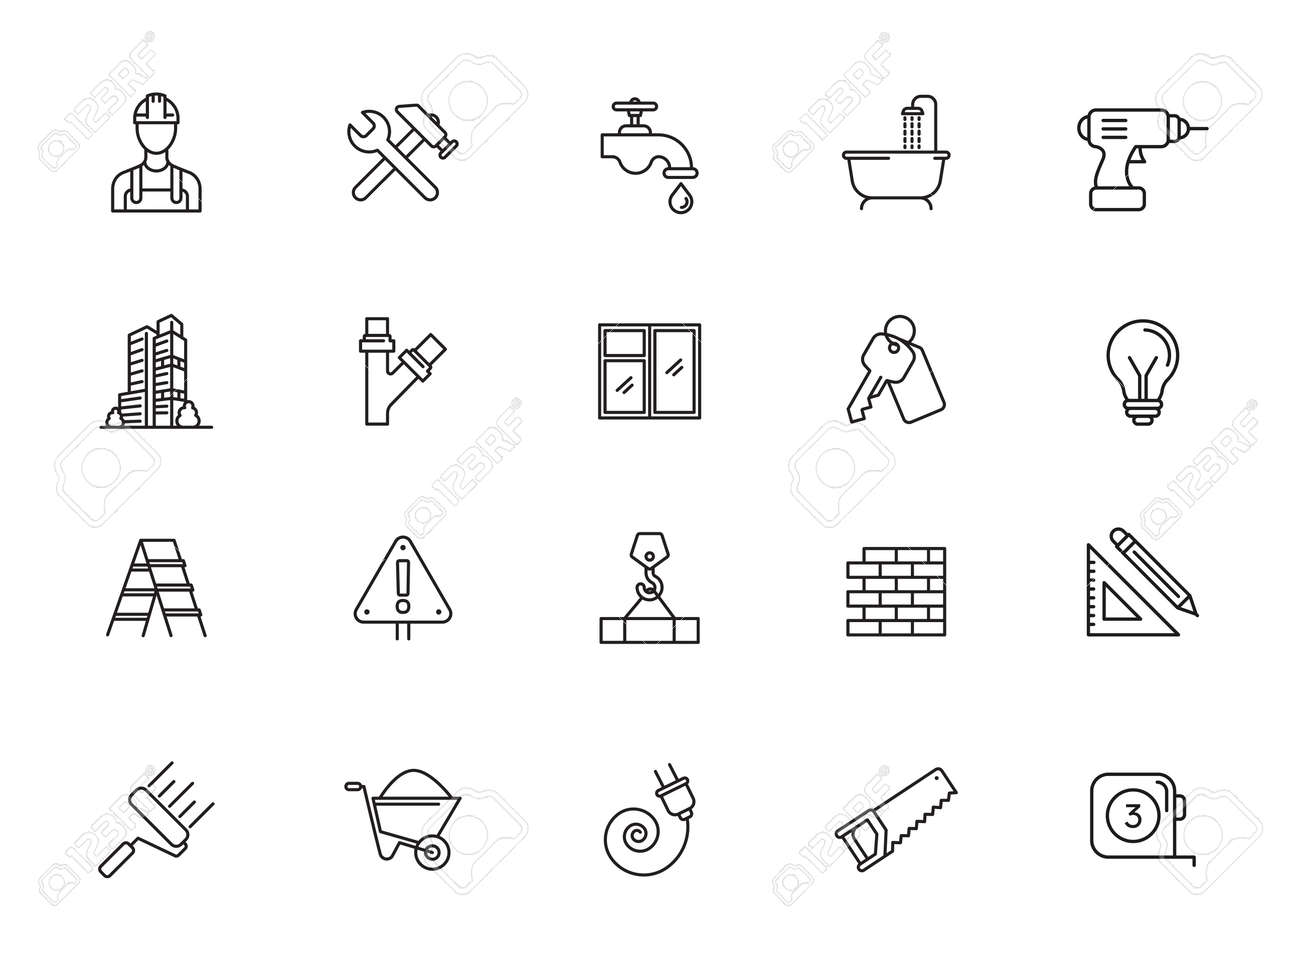 Outline web icons set - construction, home repair tools. Thin line web icons collection. Simple vector illustration. - 152970689